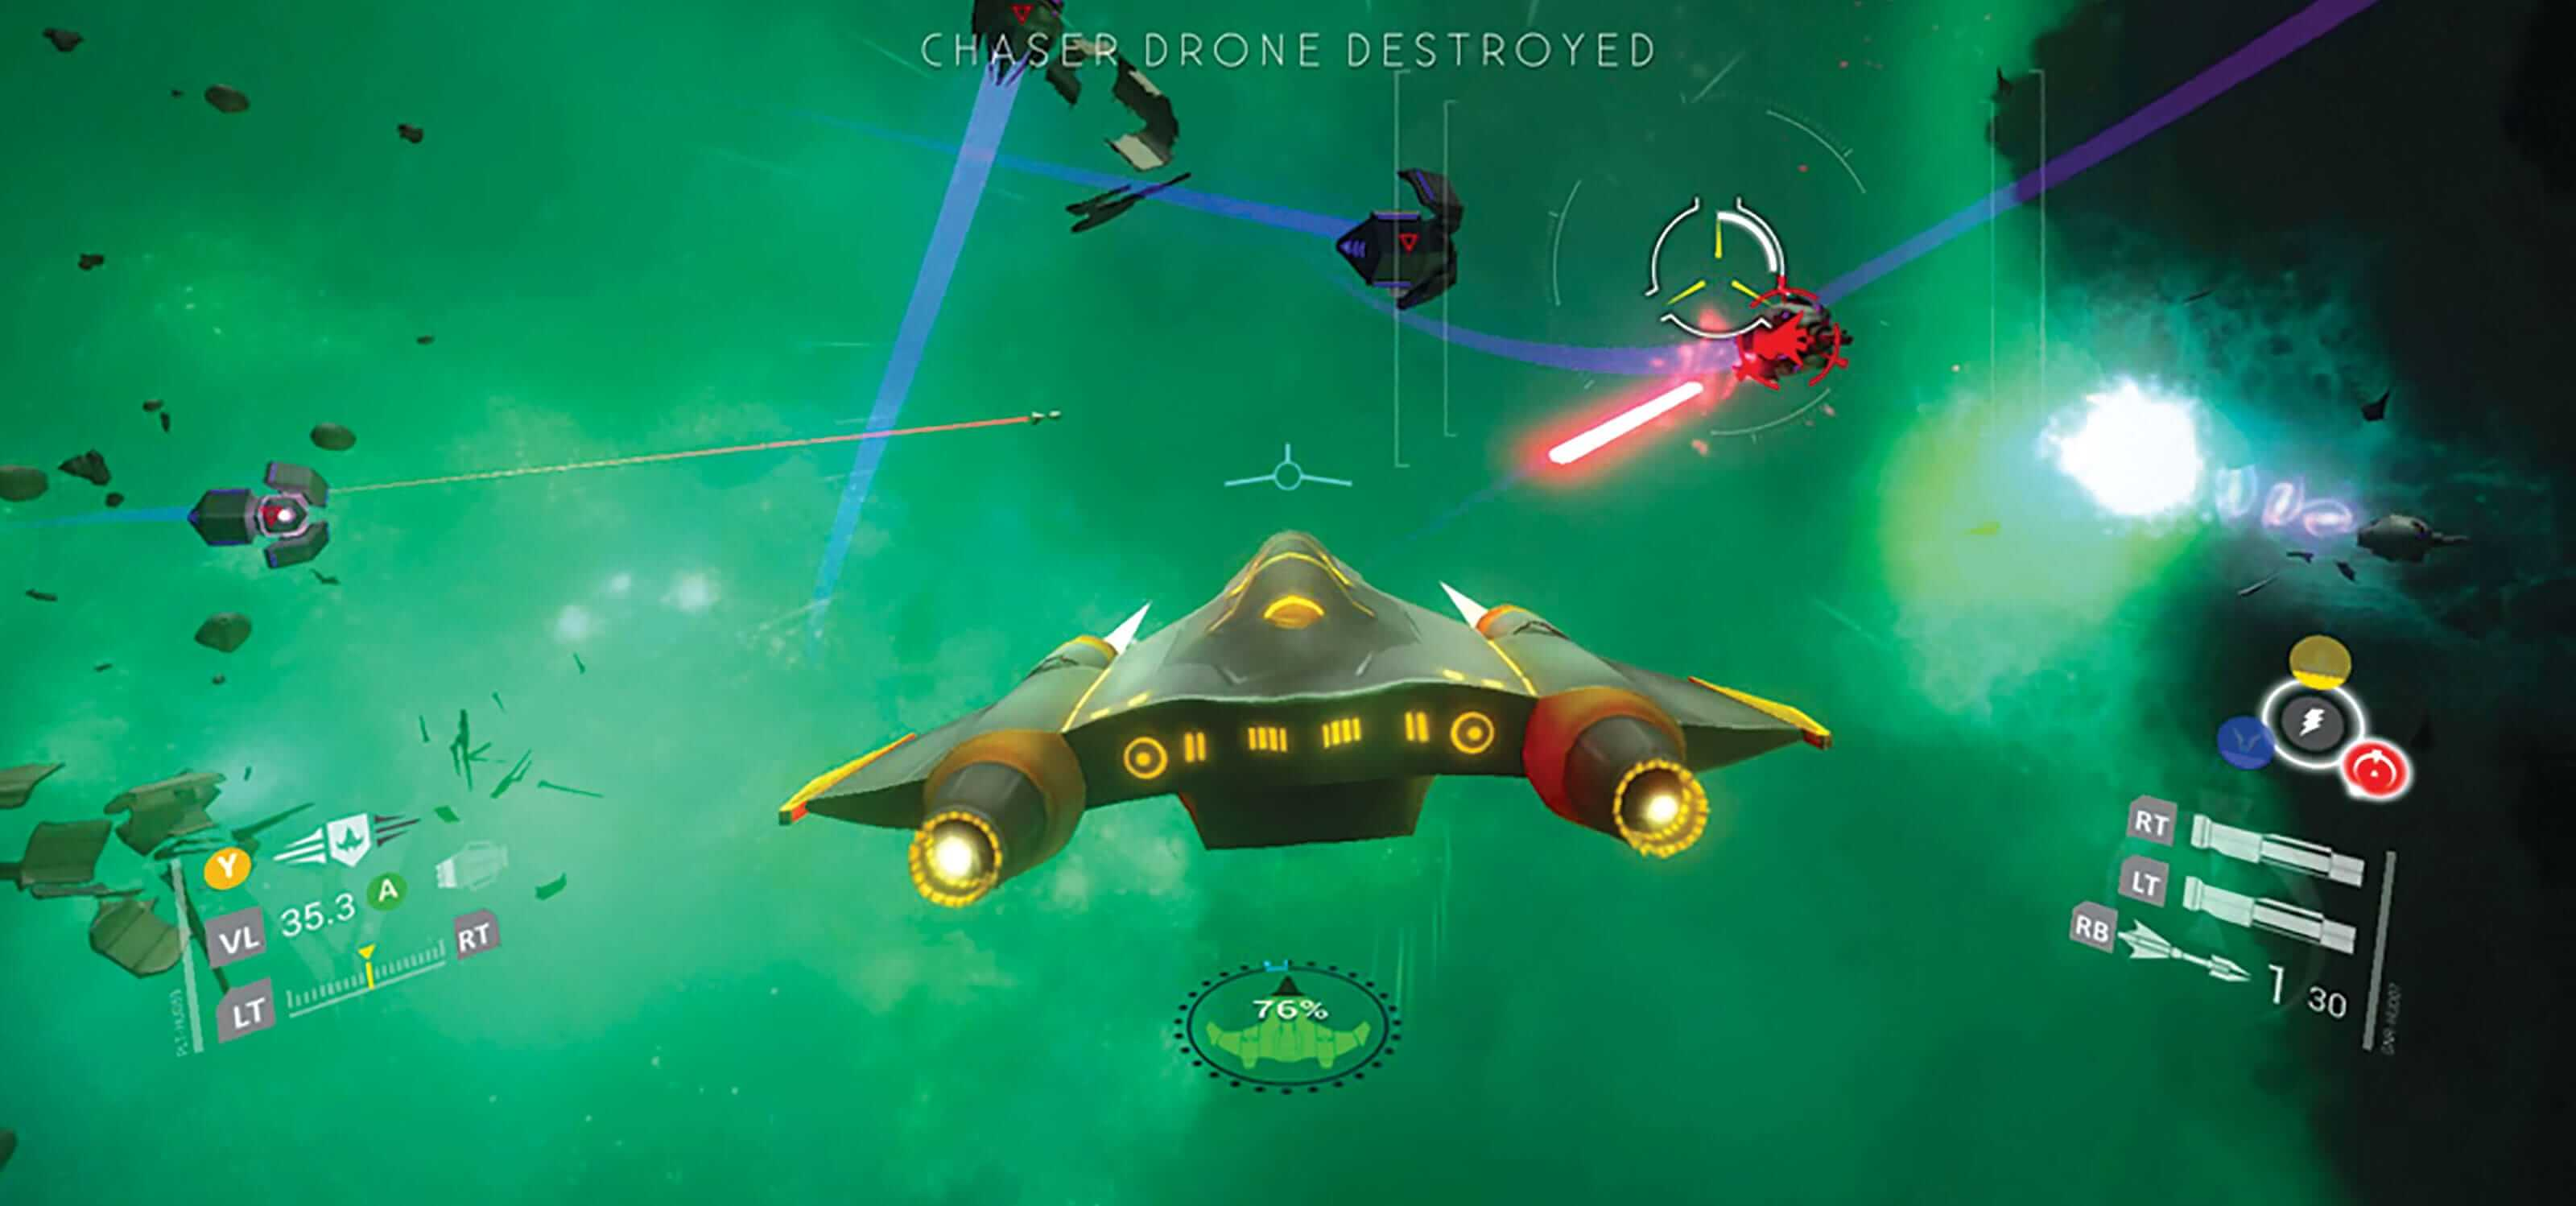 The player's spacecraft dodges an enemy's red laser bolt against a green-tinged background